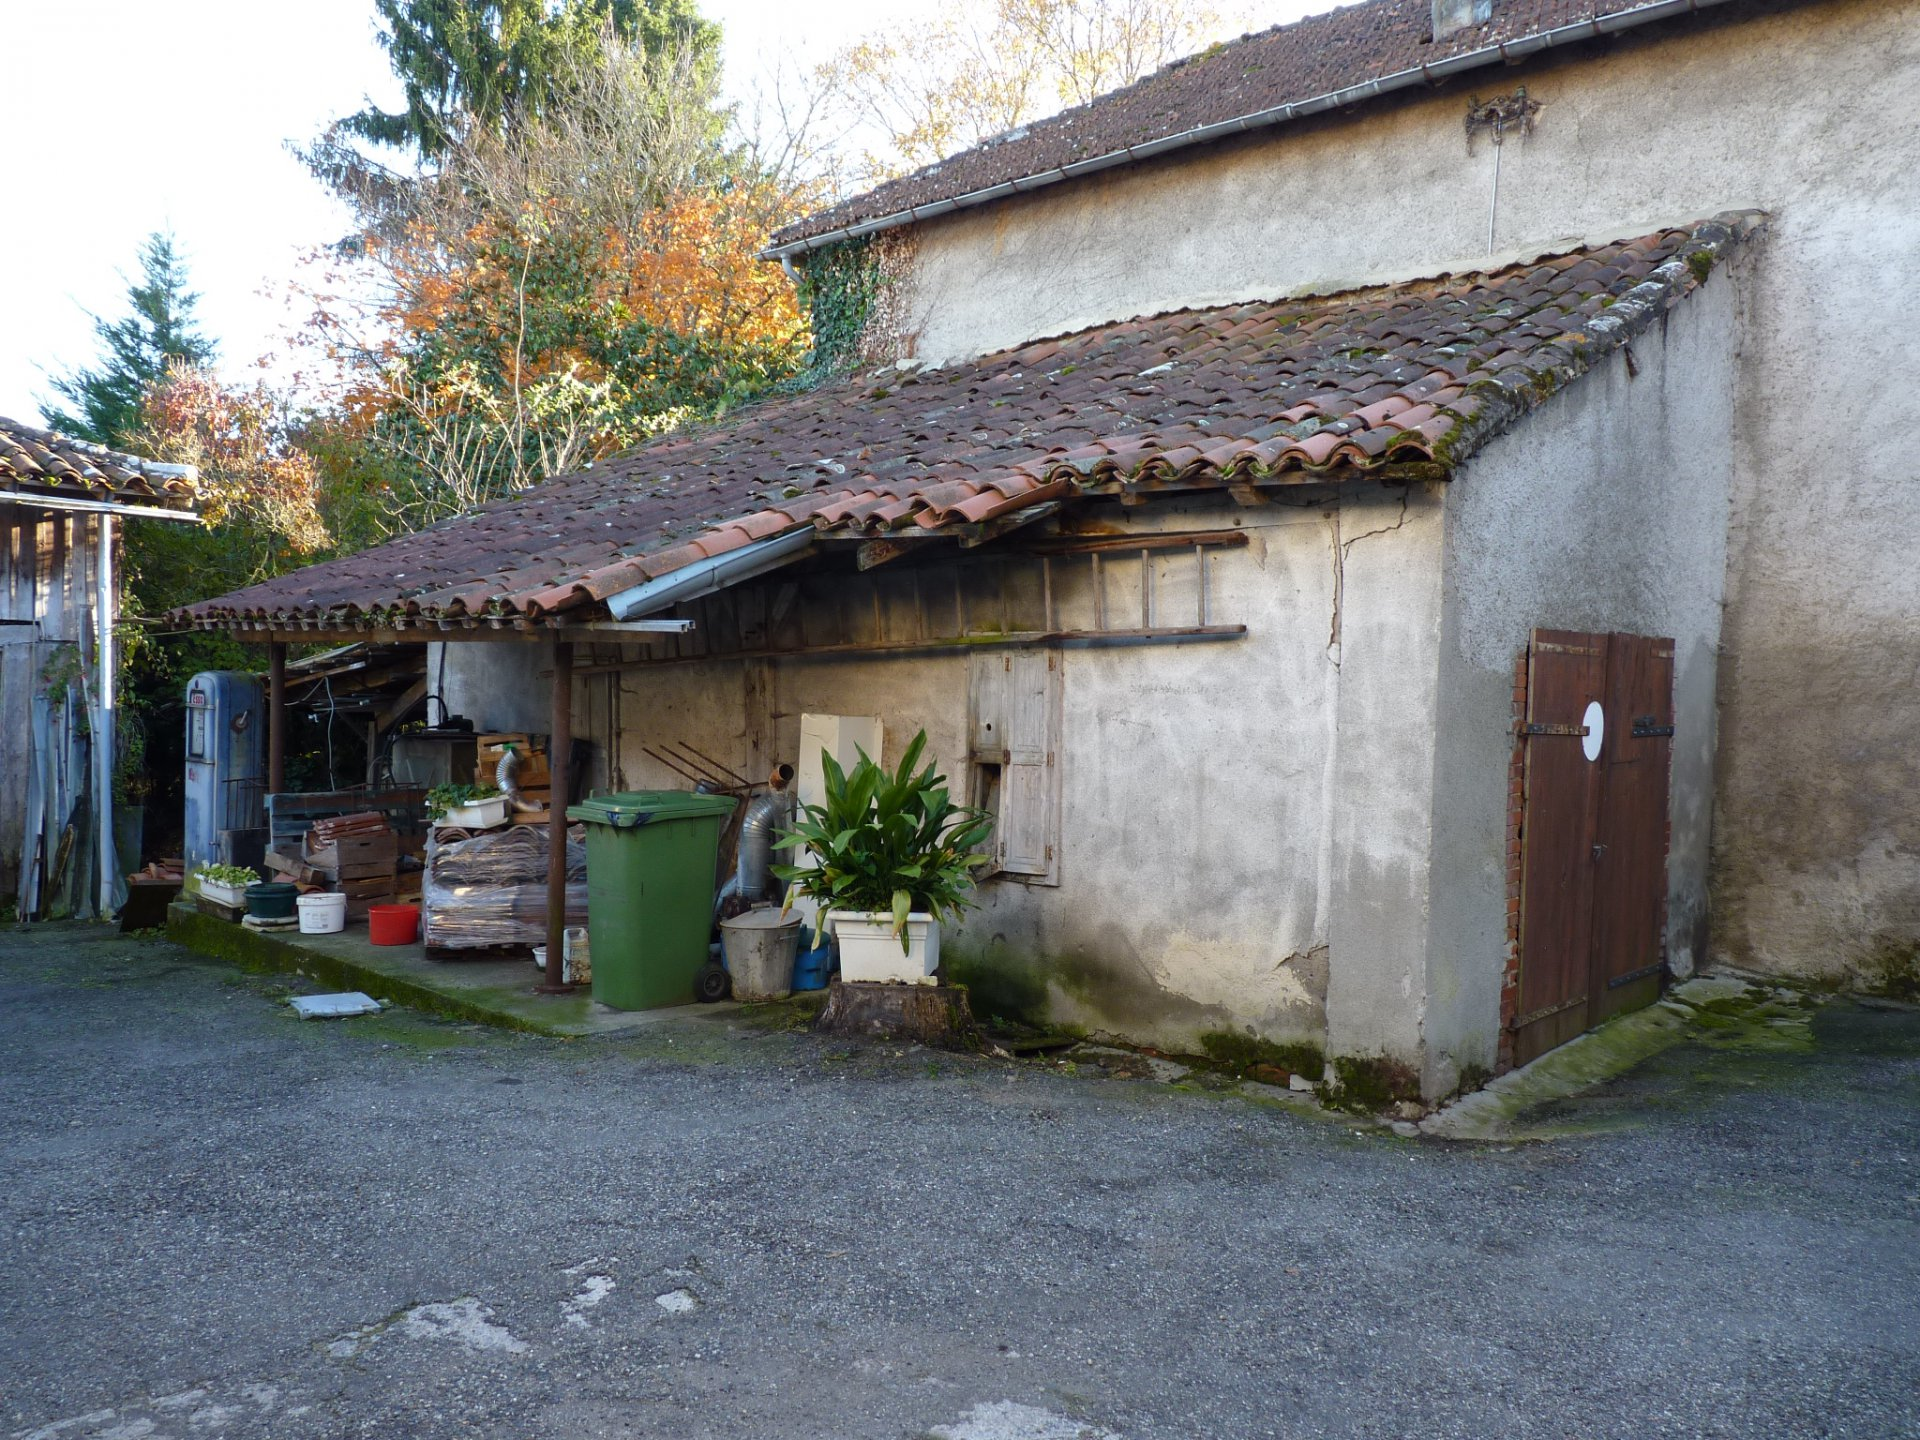 Village house with old bakery, garden and outbuildings